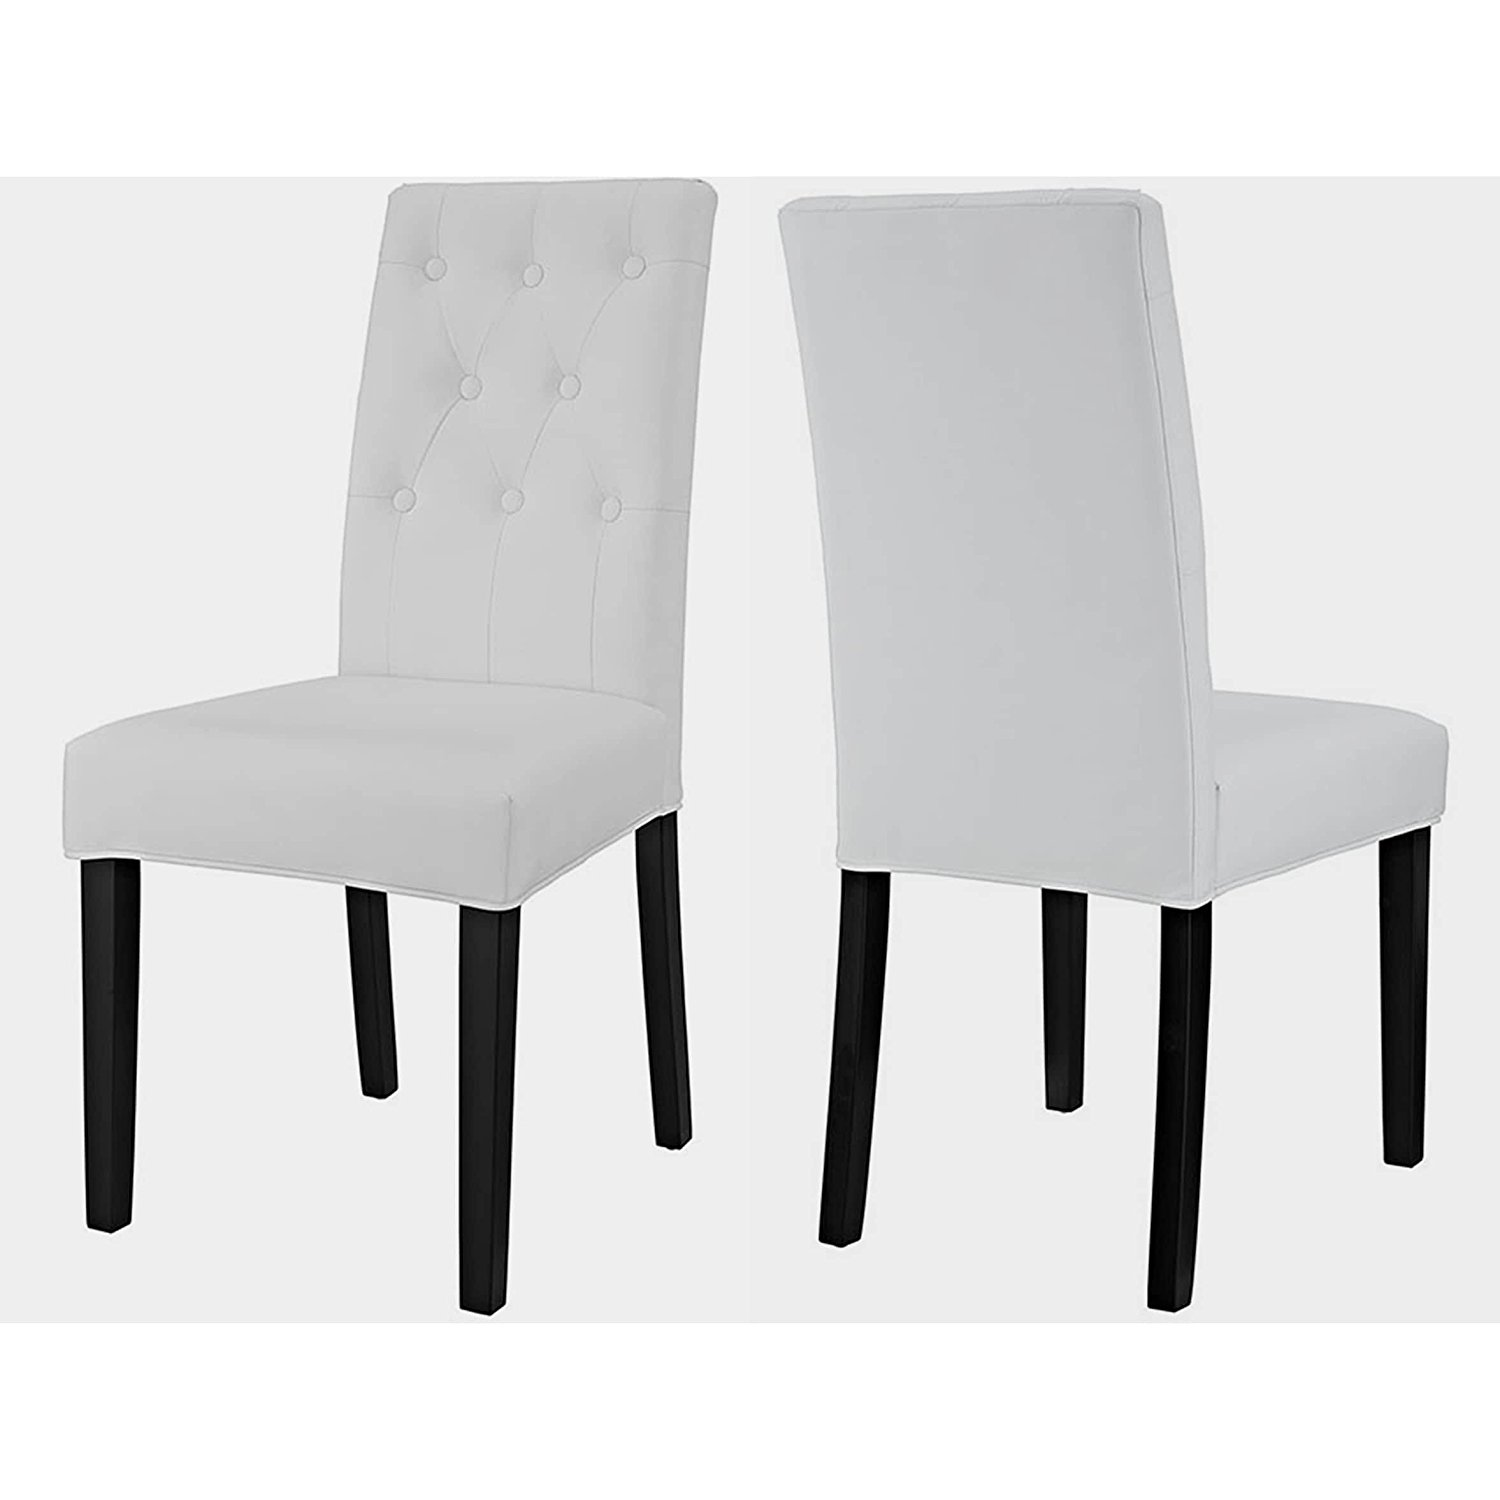 Cheap White Tufted Dining Chair Find White Tufted Dining